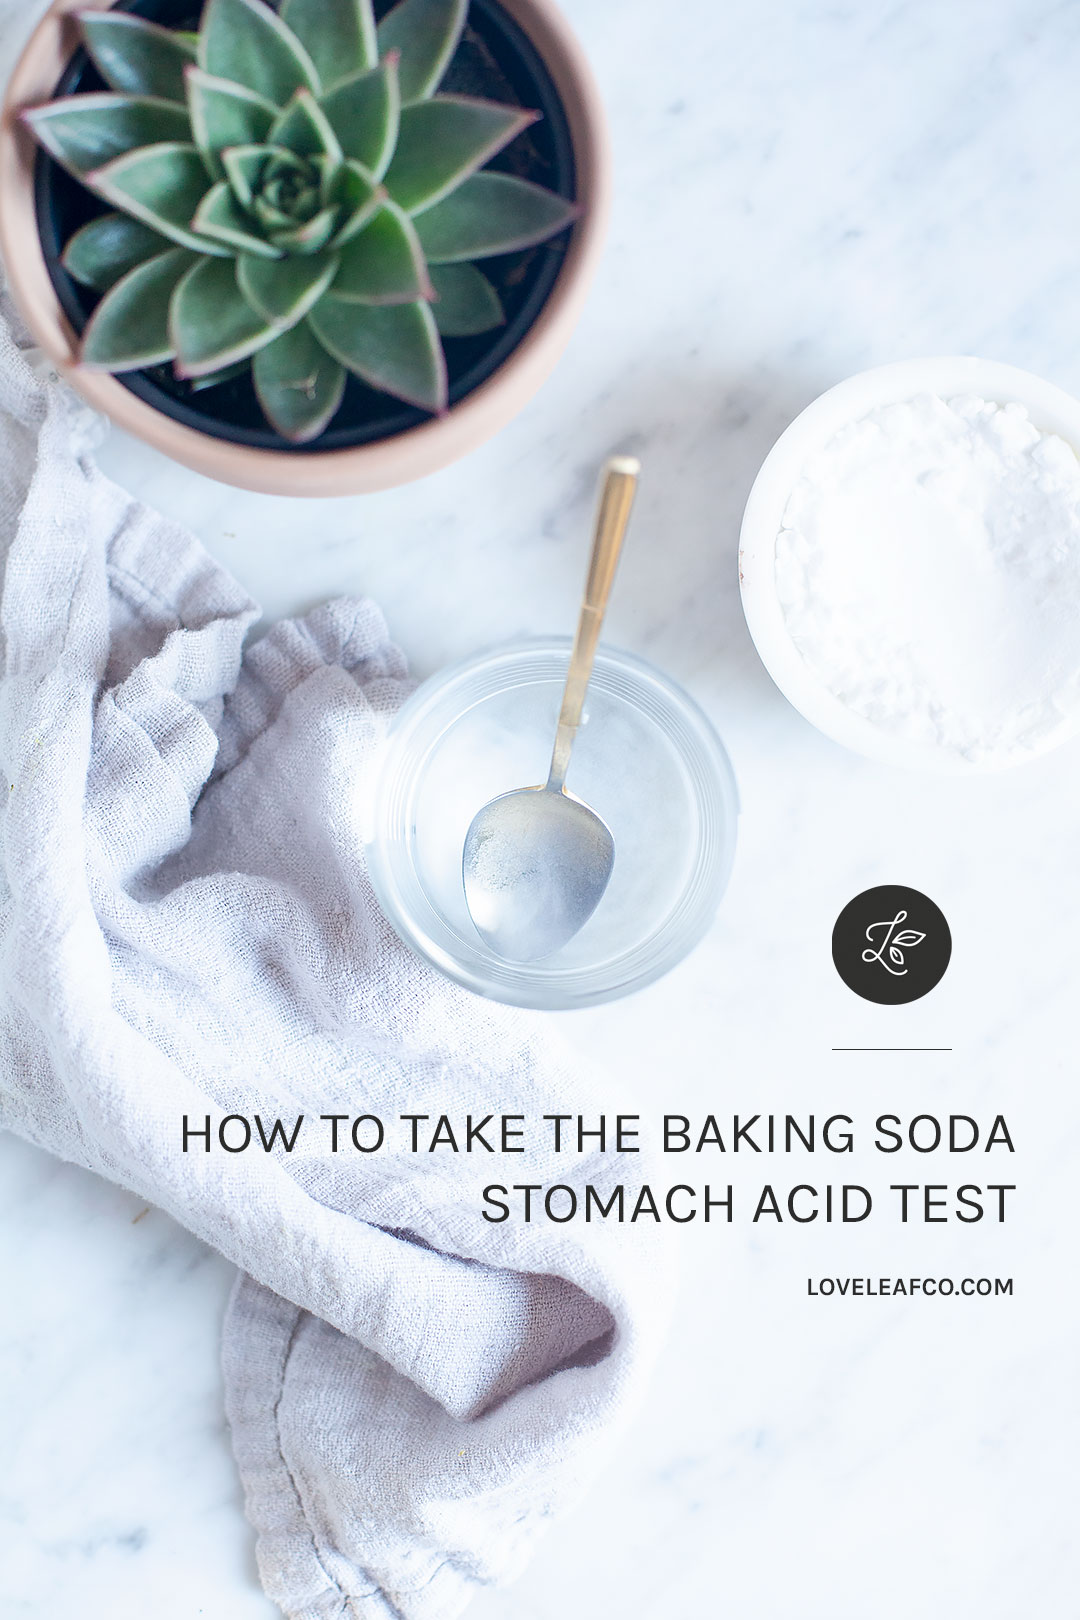 HOW TO TAKE THE BAKING SODA STOMACH ACID TEST | How to take the baking soda stomach acid test to help determine whether or not you have adequate stomach acid levels. A natural, easy, and affordable DIY test for healthy digestion. | LOVELEAF CO. NUTRITION #digestivehealth #digestion #holistichealth #wellness #nutrition #guthealth #bakingsoda #diy